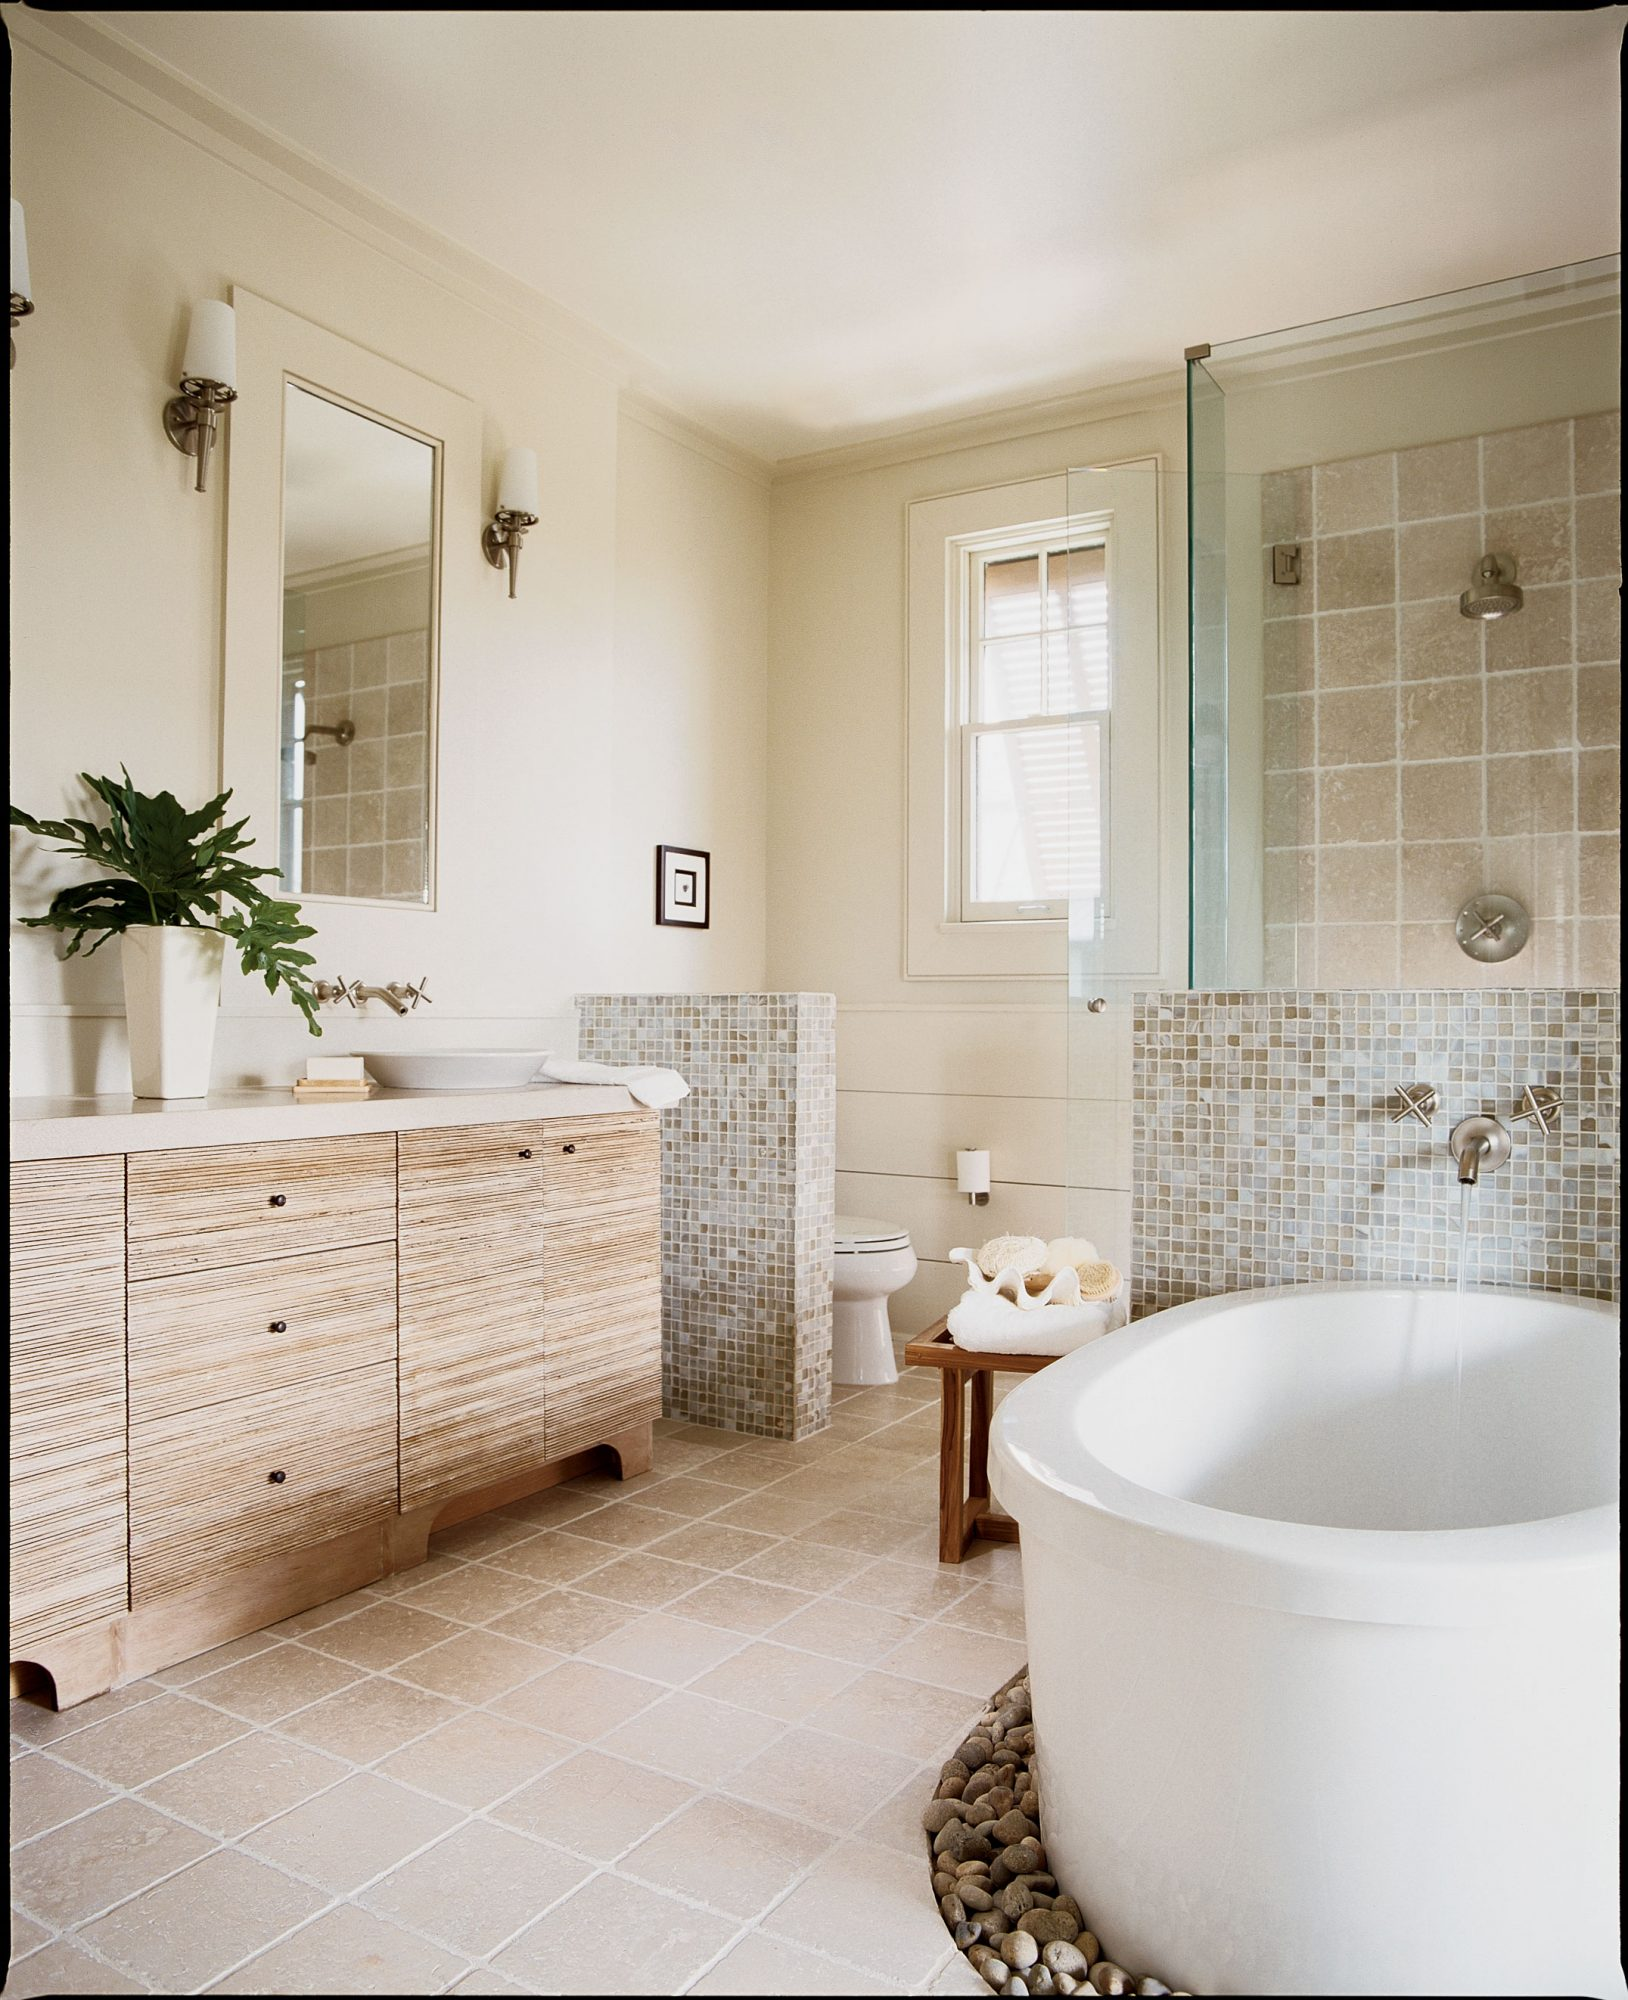 master bath with a freestanding white, modern tub and a glass shower set up behind